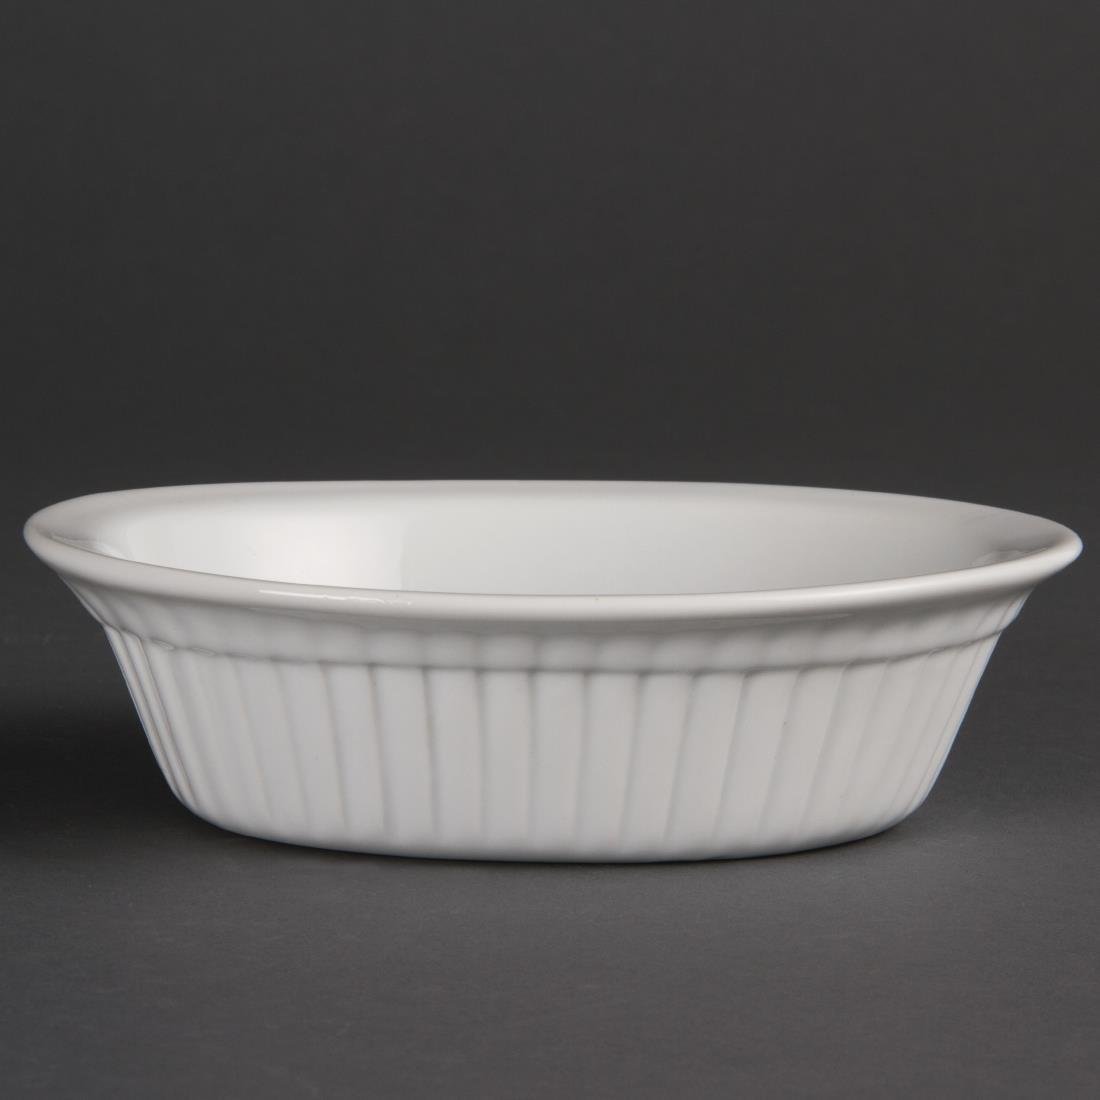 Olympia Whiteware Oval Pie Dishes 170mm